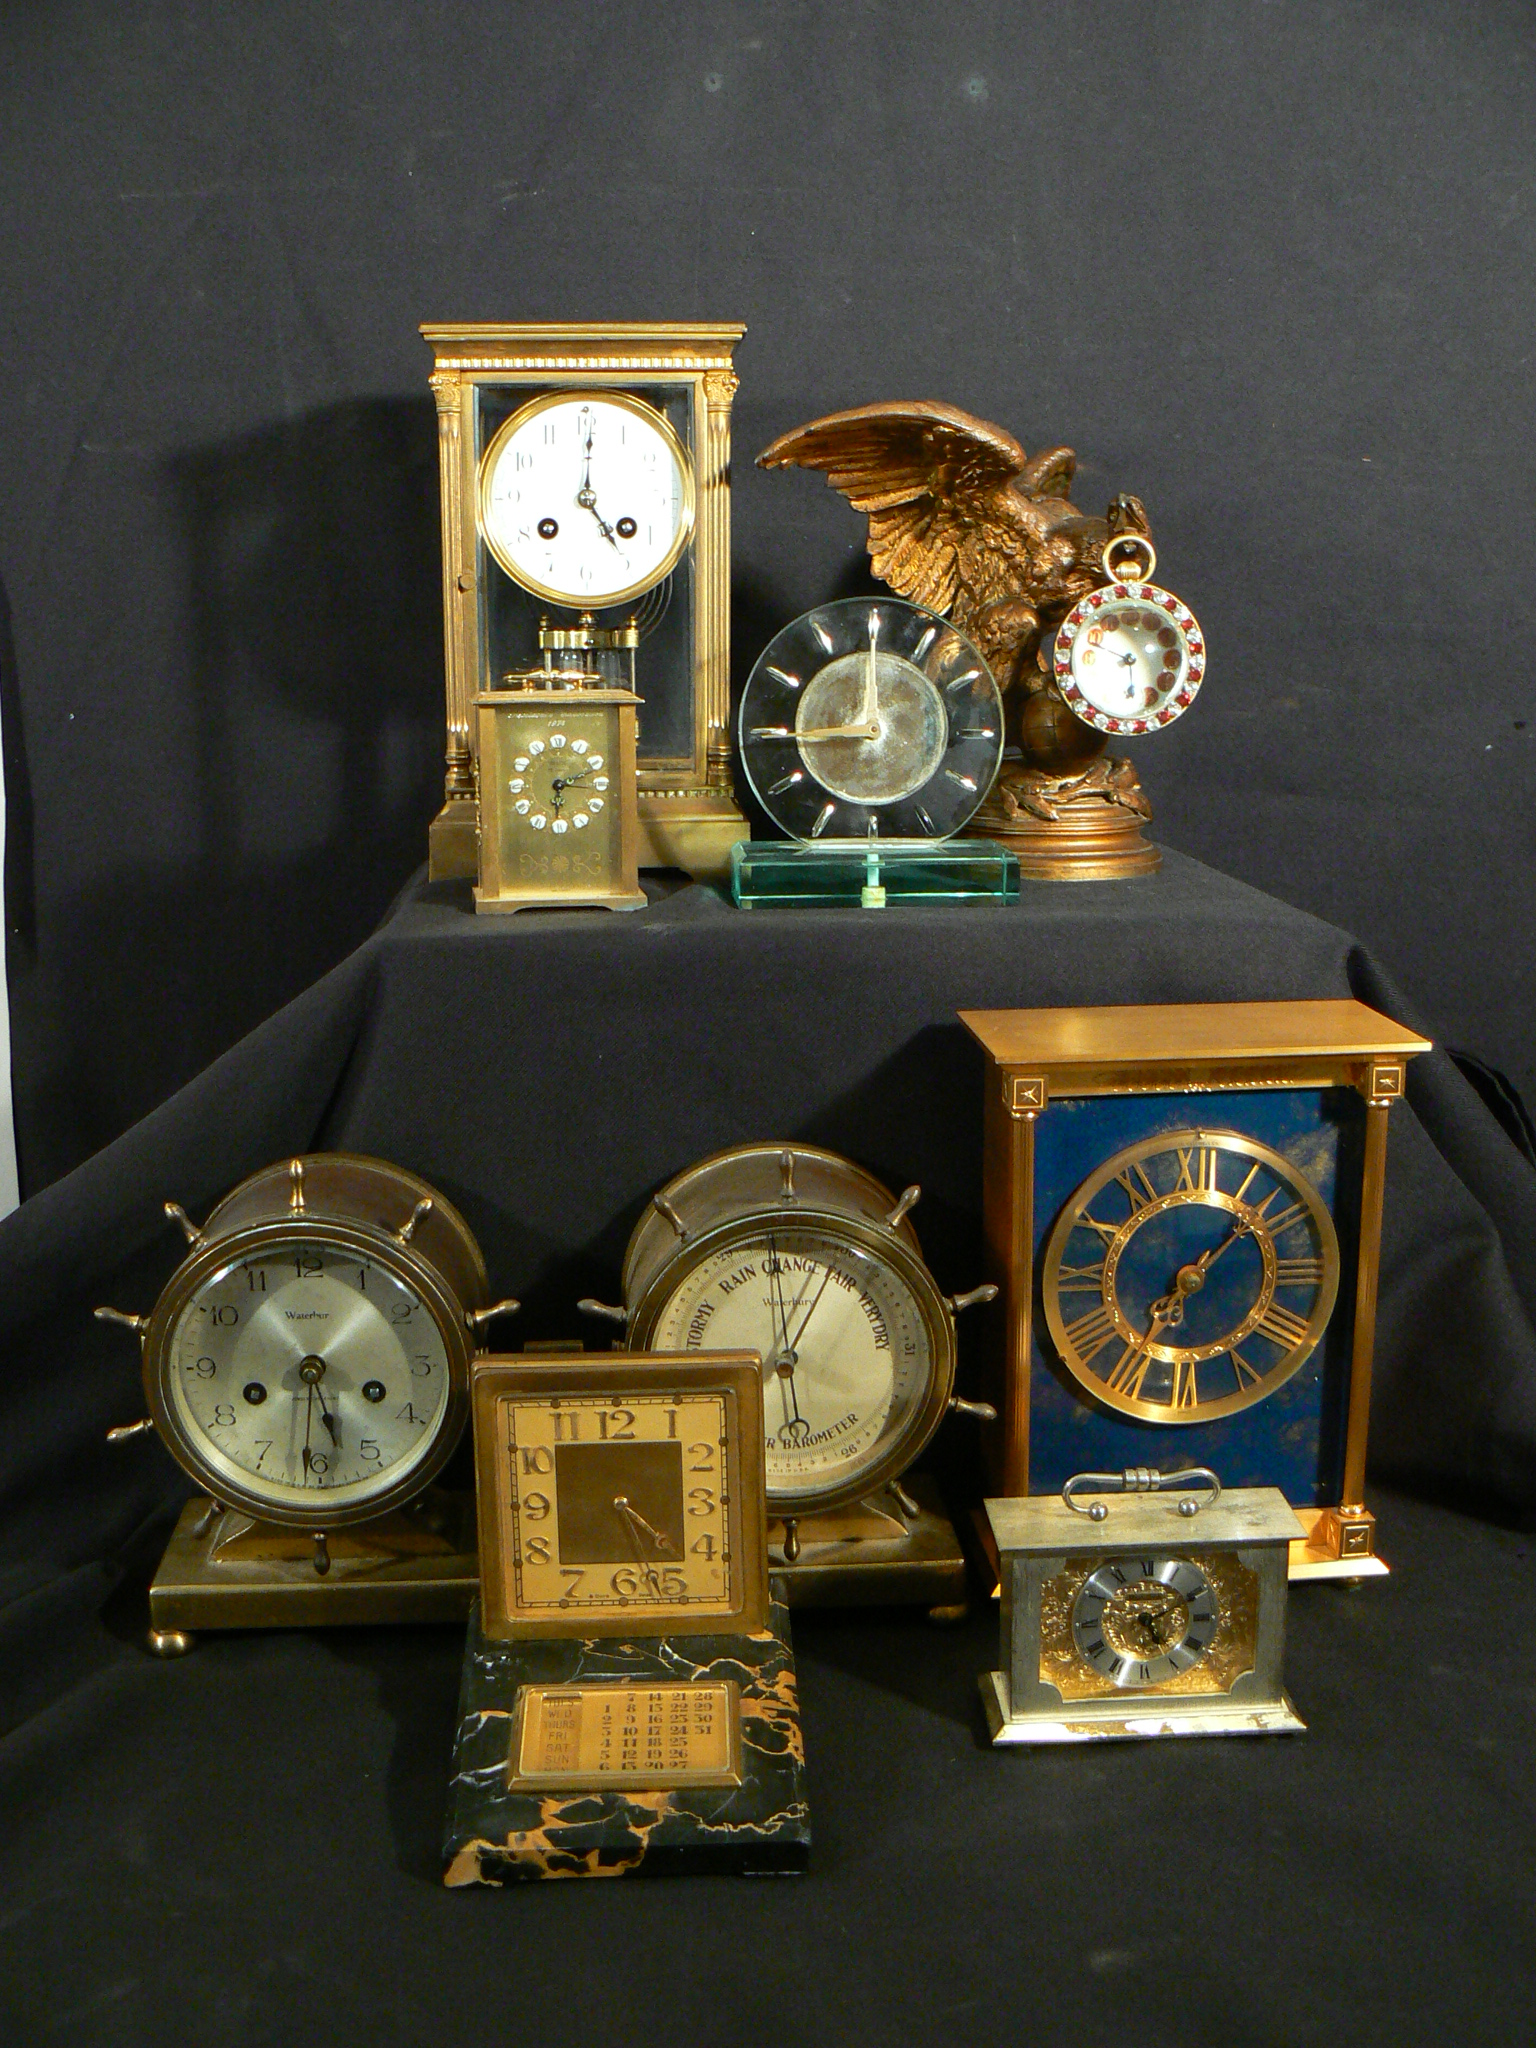 of course we buy antique clocks